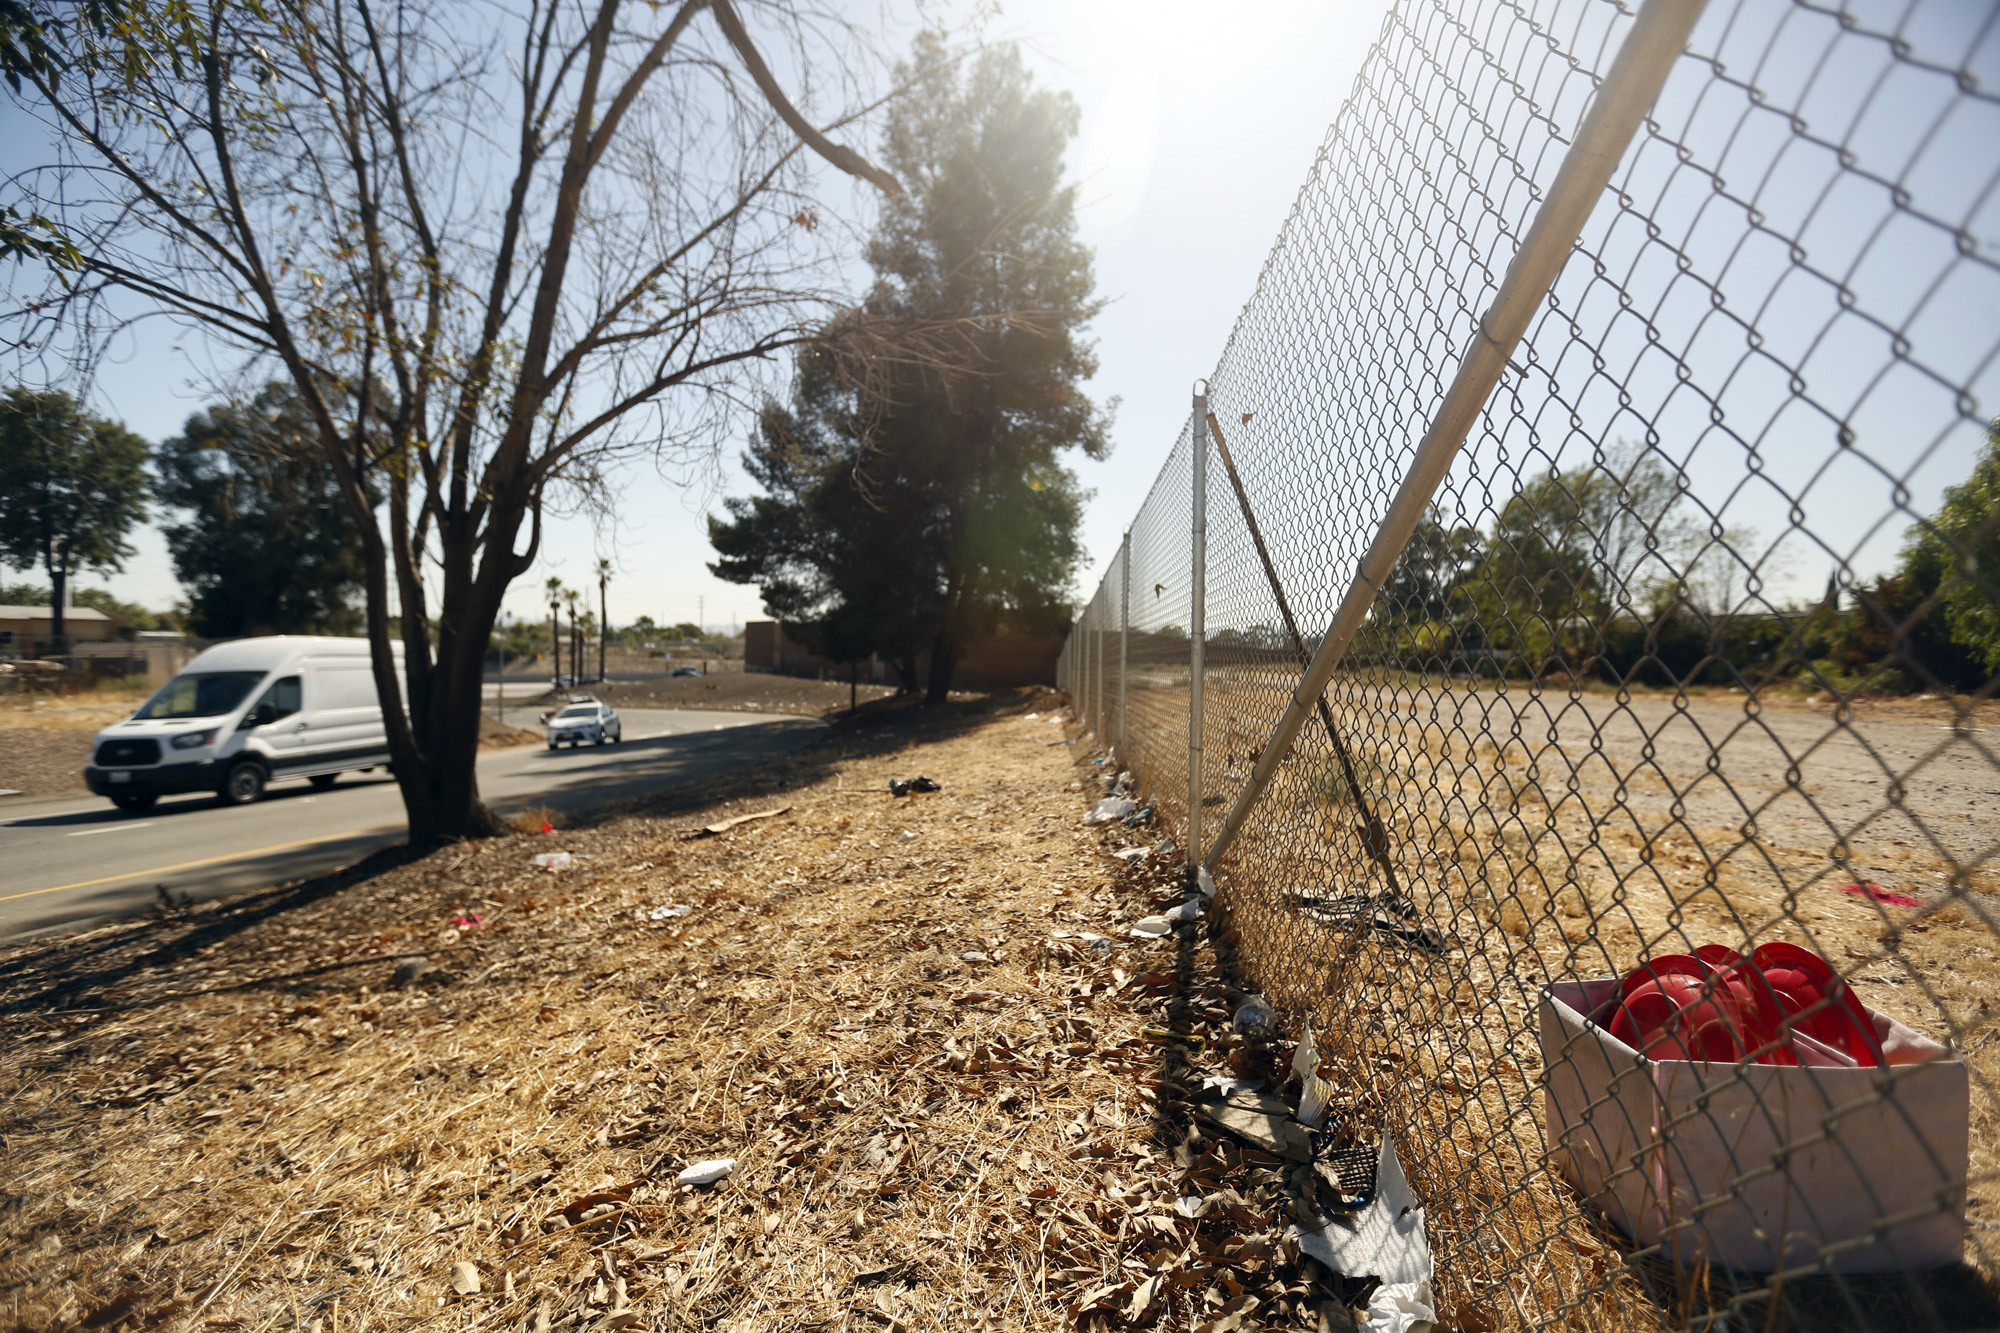 SUN VALLEY, CA — OCTOBER 5, 2017 — A vacant lot where the I-5 exits onto Laurel Canyon Blvd. is a